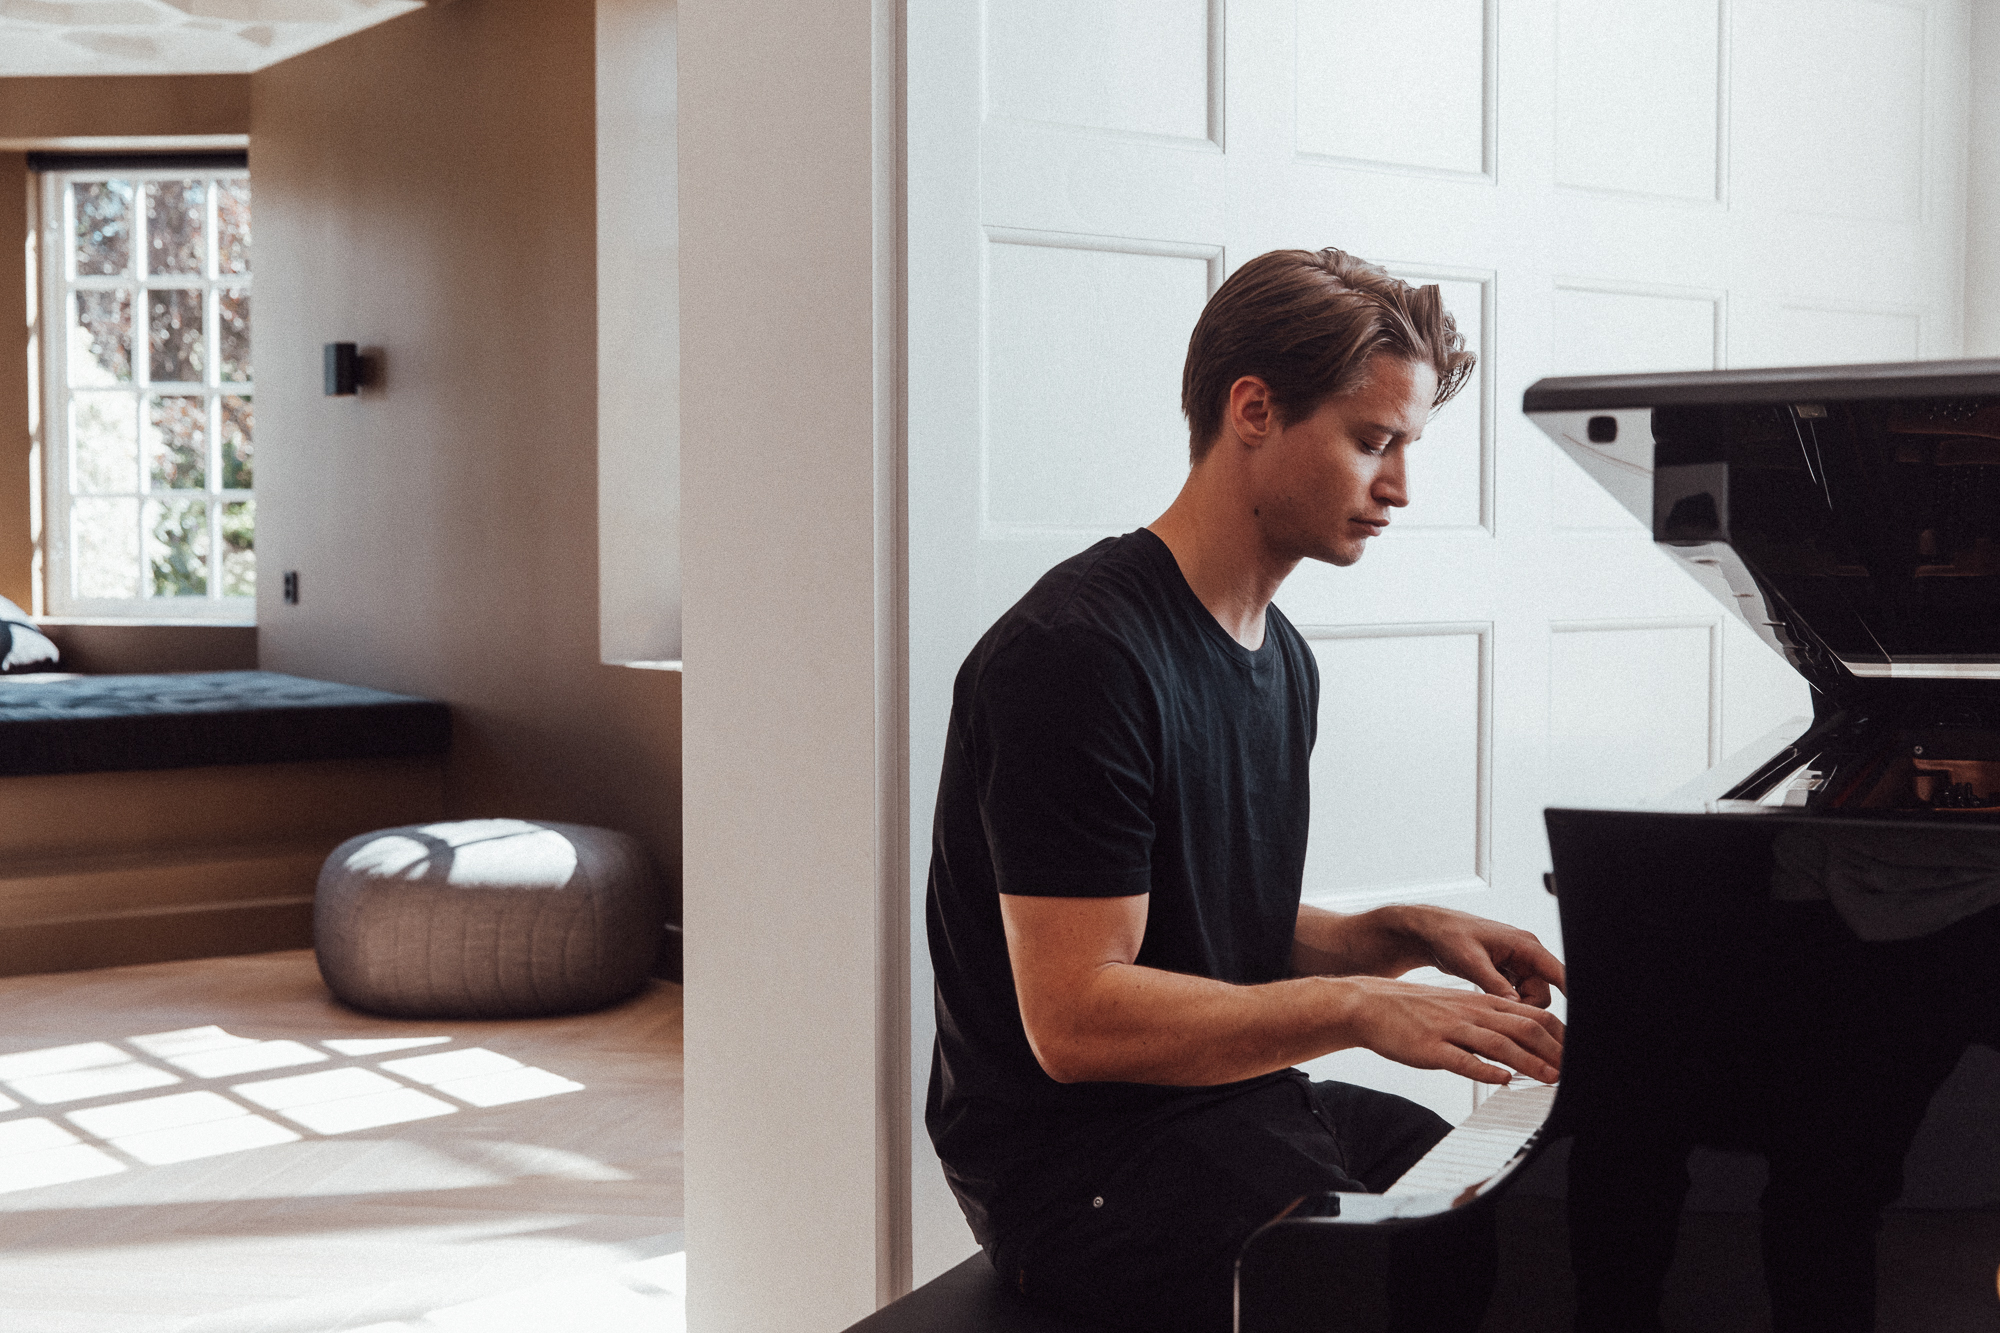 Interview: At home with Kygo | The Gentleman's Journal